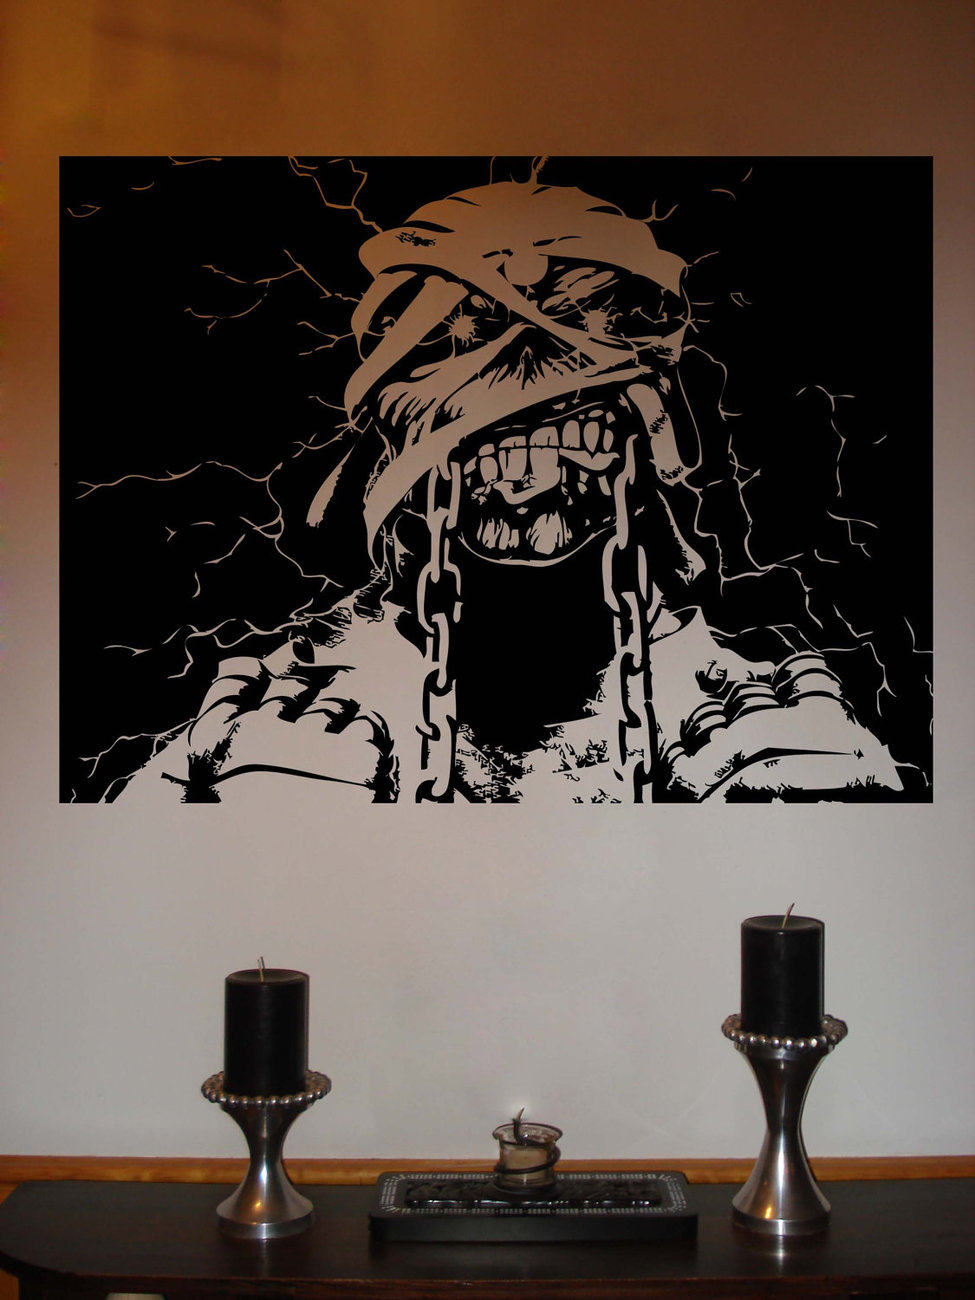 Iron Maiden Eddie Powerslave Metal Vinyl Wall Sticker Decal  28 in w x 22 in h